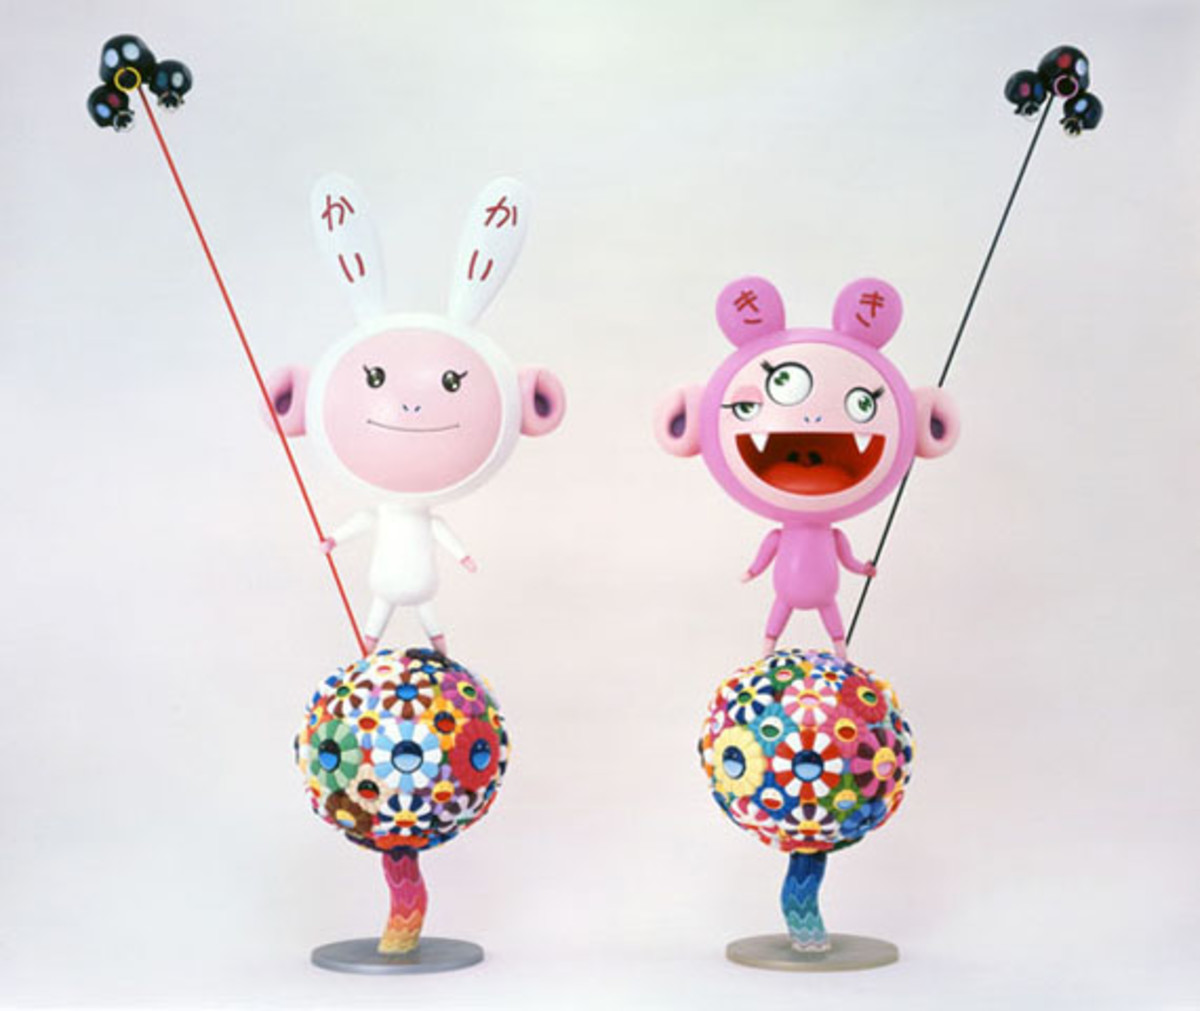 interview-magazine-takashi-murakami-1